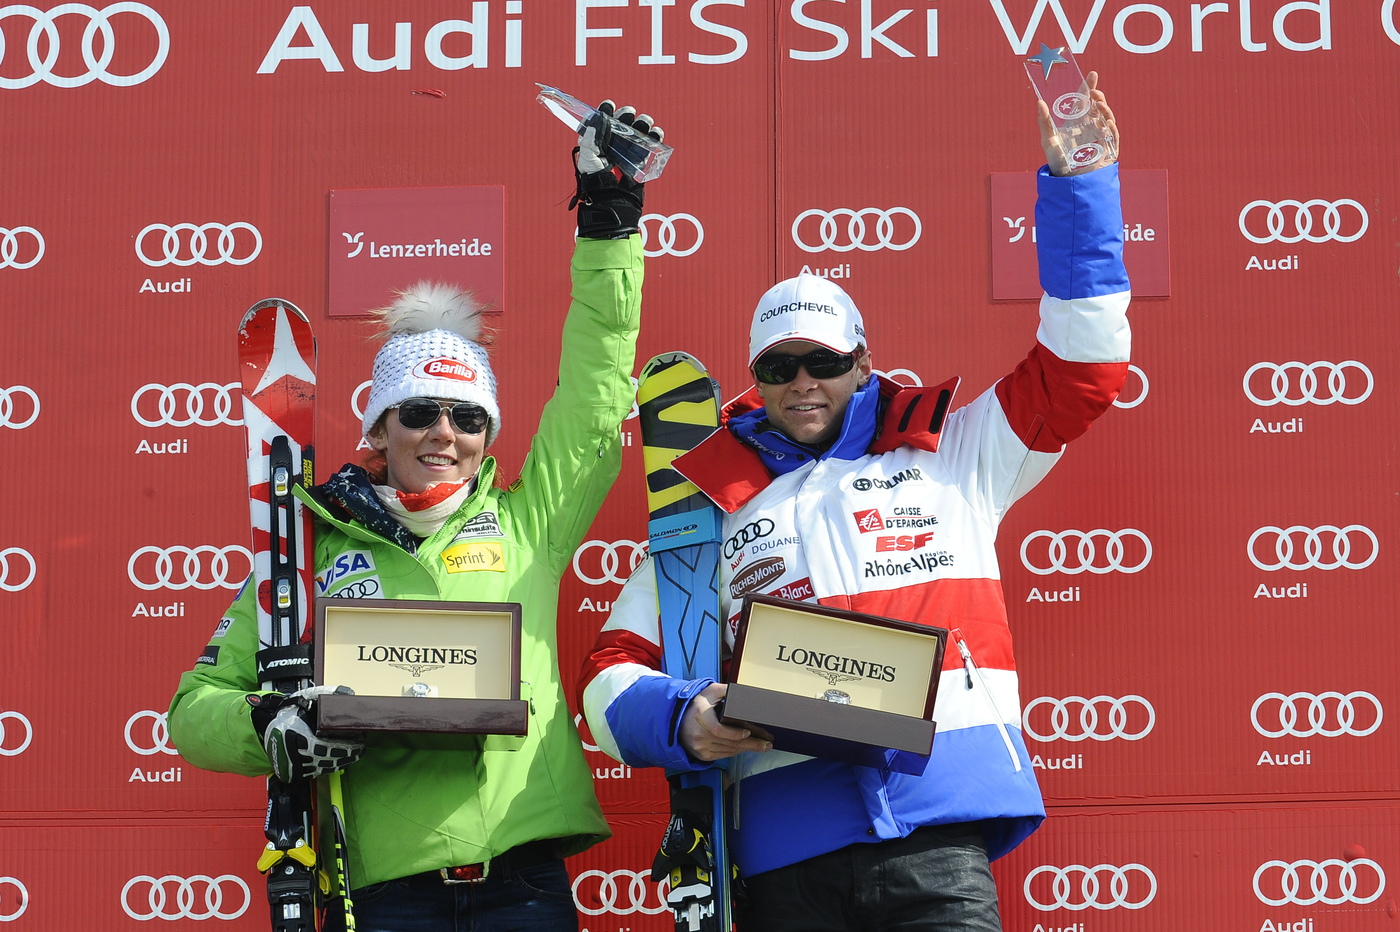 Longines Alpine Skiing Event: FIS World Cup Alpine Skiing – The Start of a New and Promising Season 3